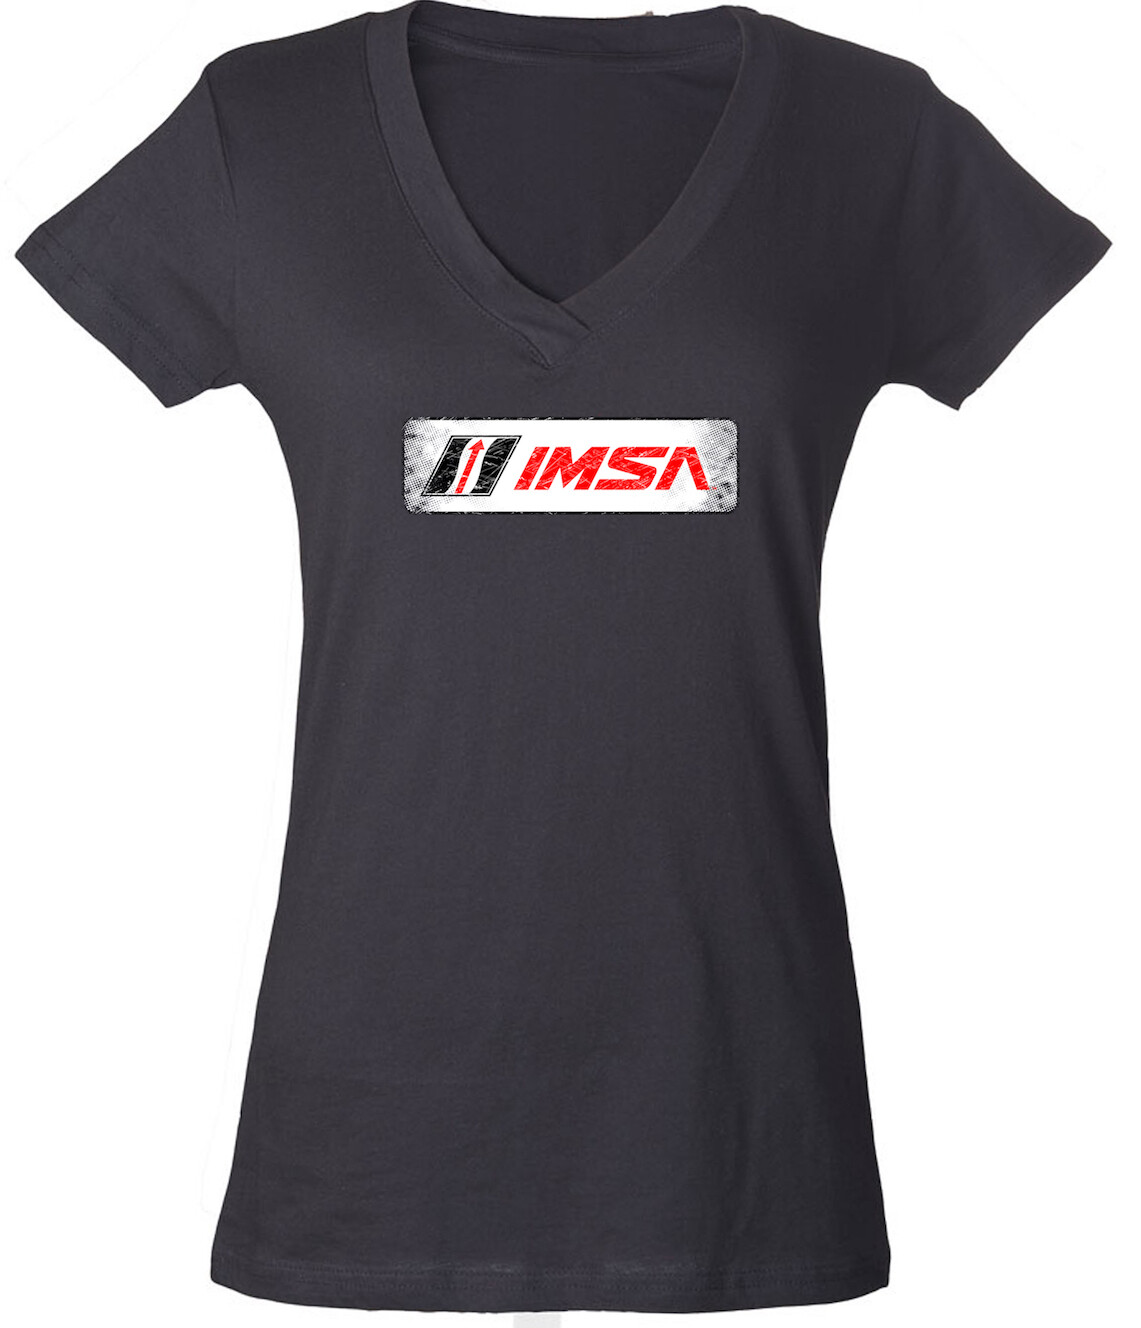 IMSA Ladies Logo Tee - Charcoal